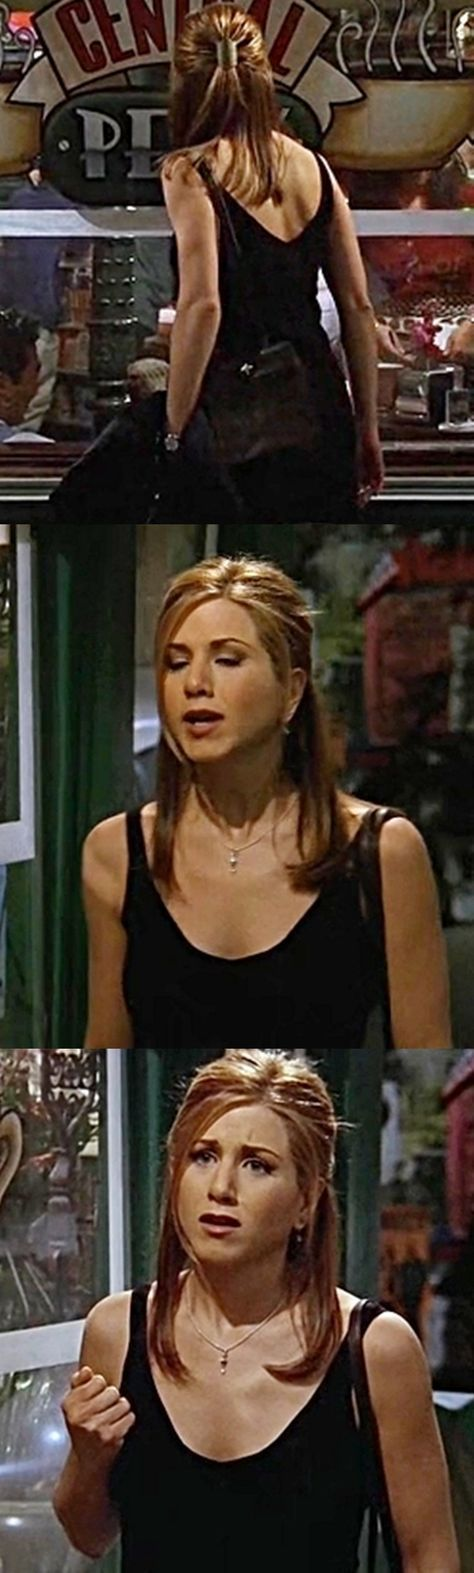 New fashion 90s 1990s outfits rachel green Ideas #rachelgreenoutfits New fashion 90s 1990s outfits rachel green Ideas #rachelgreenoutfits